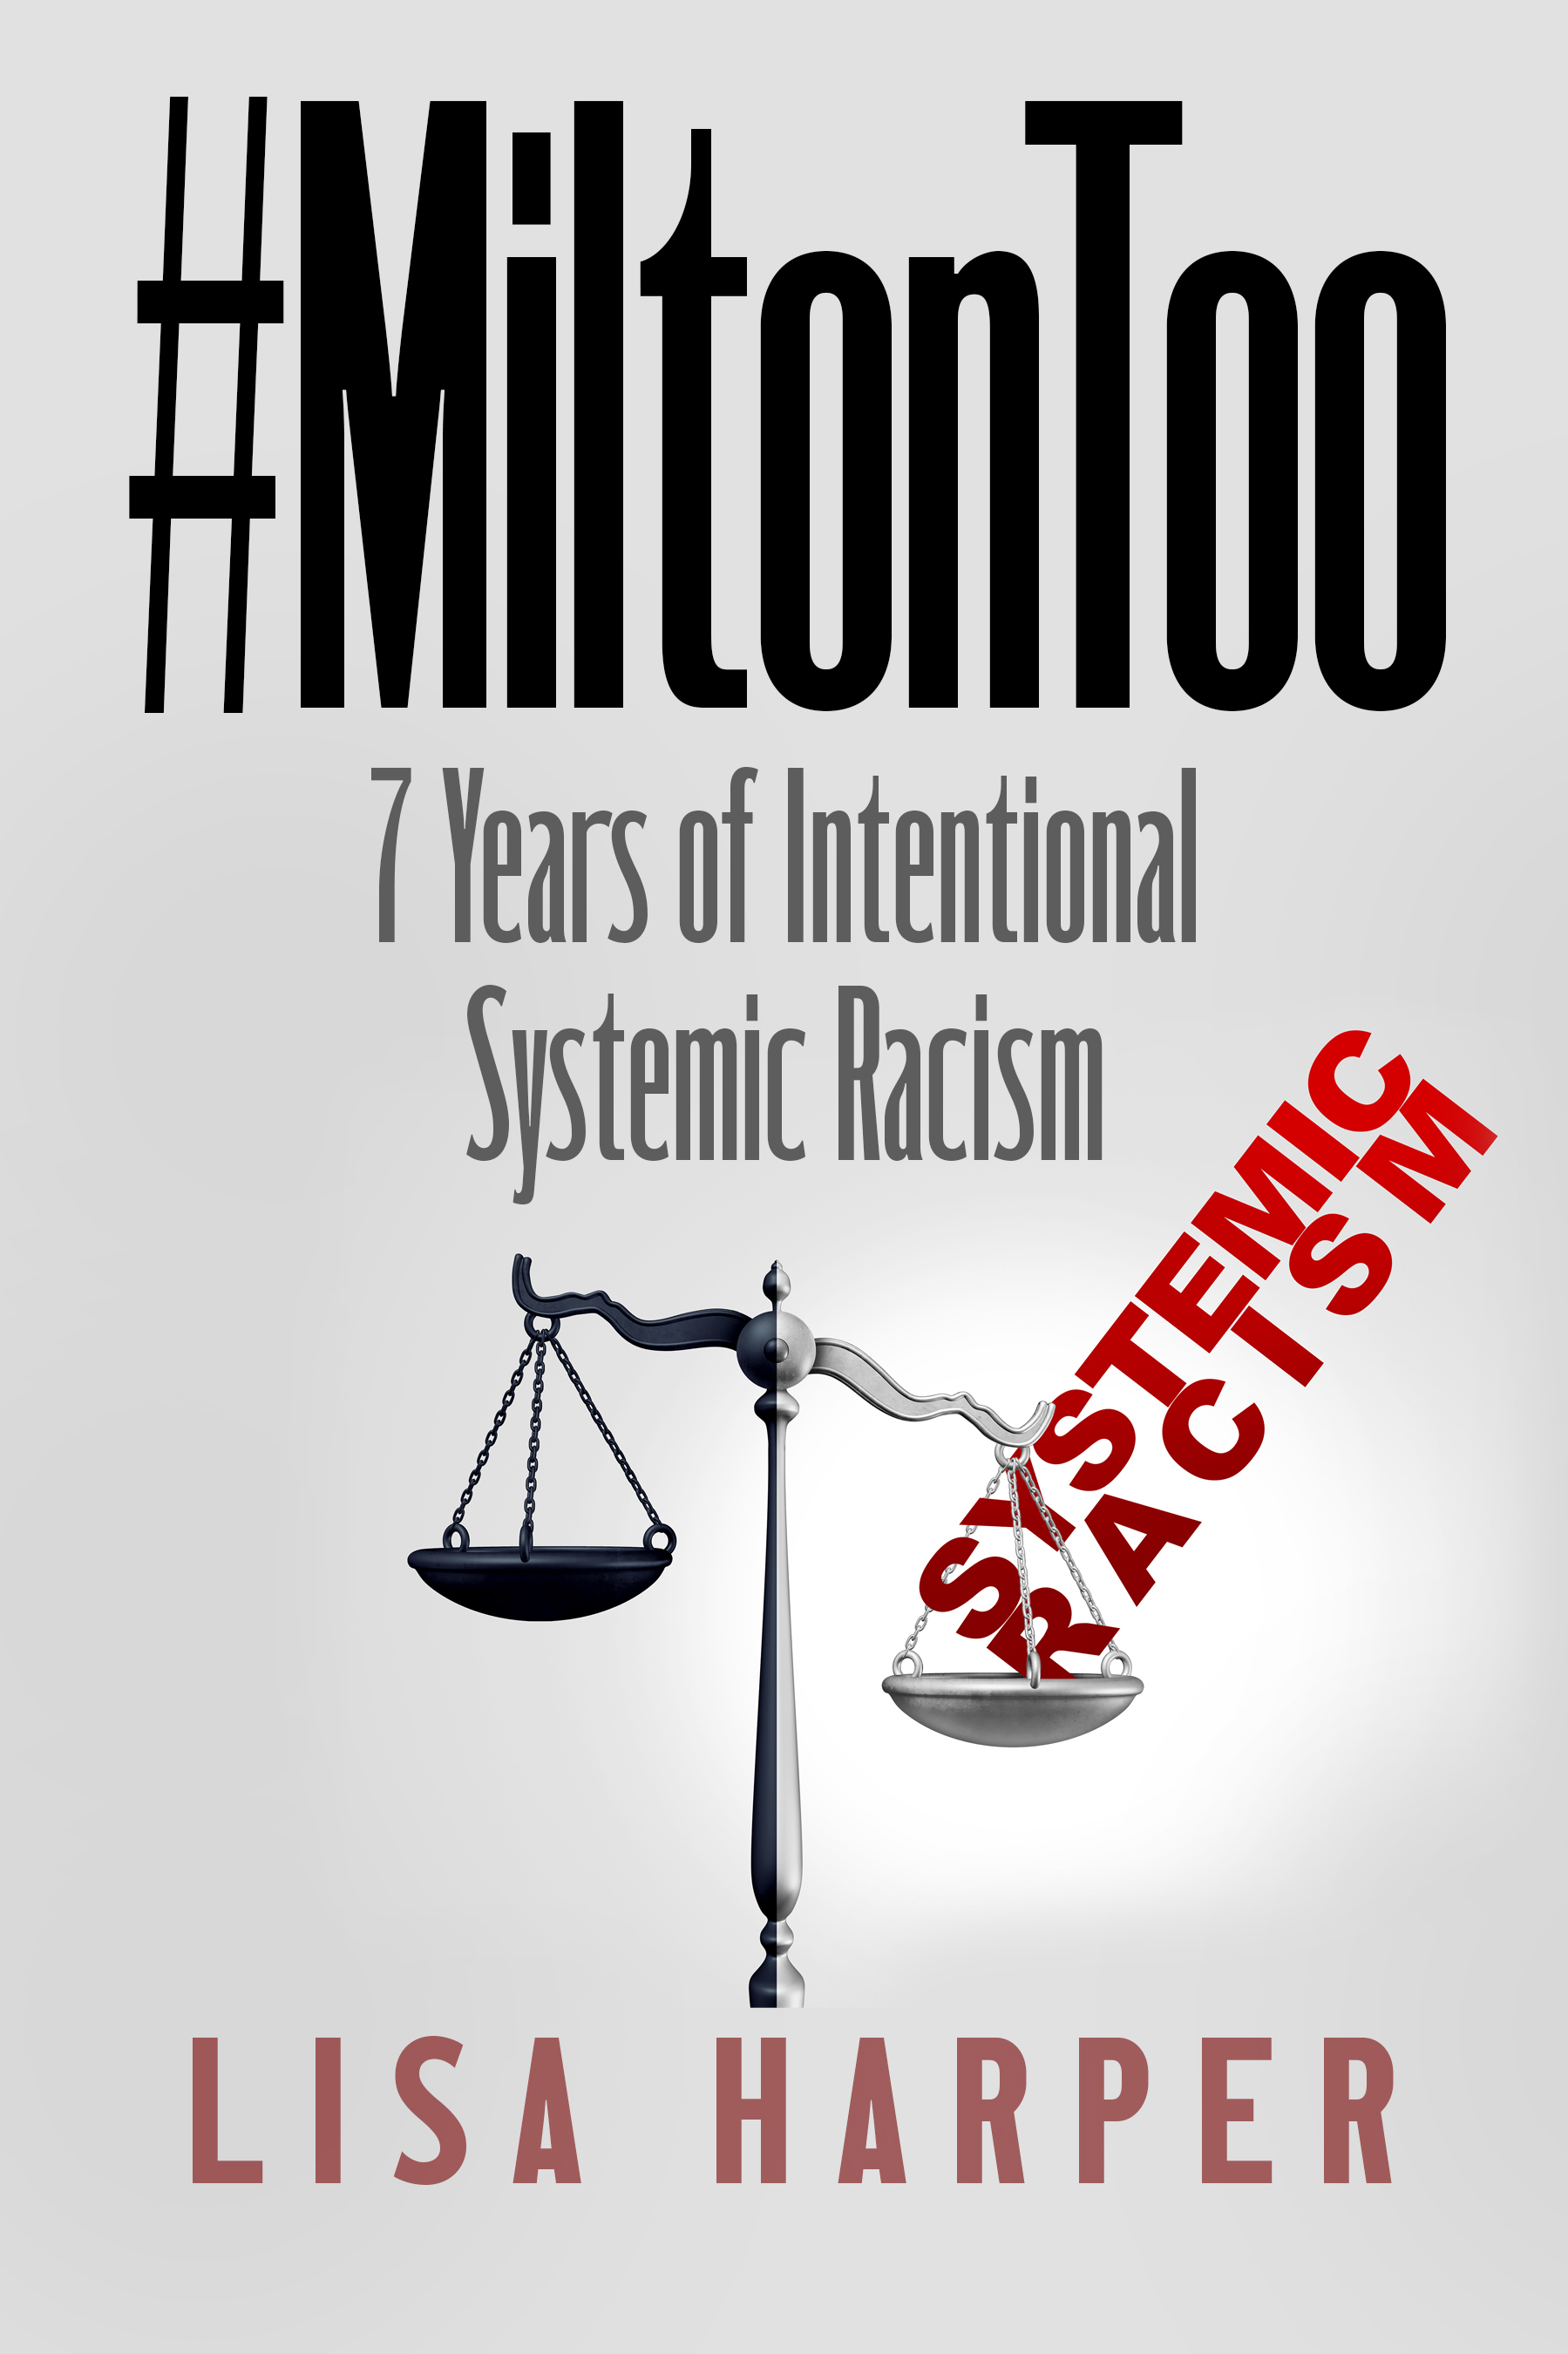 Lisa Harper Advocates For Justice In Her New Book - #MiltonToo